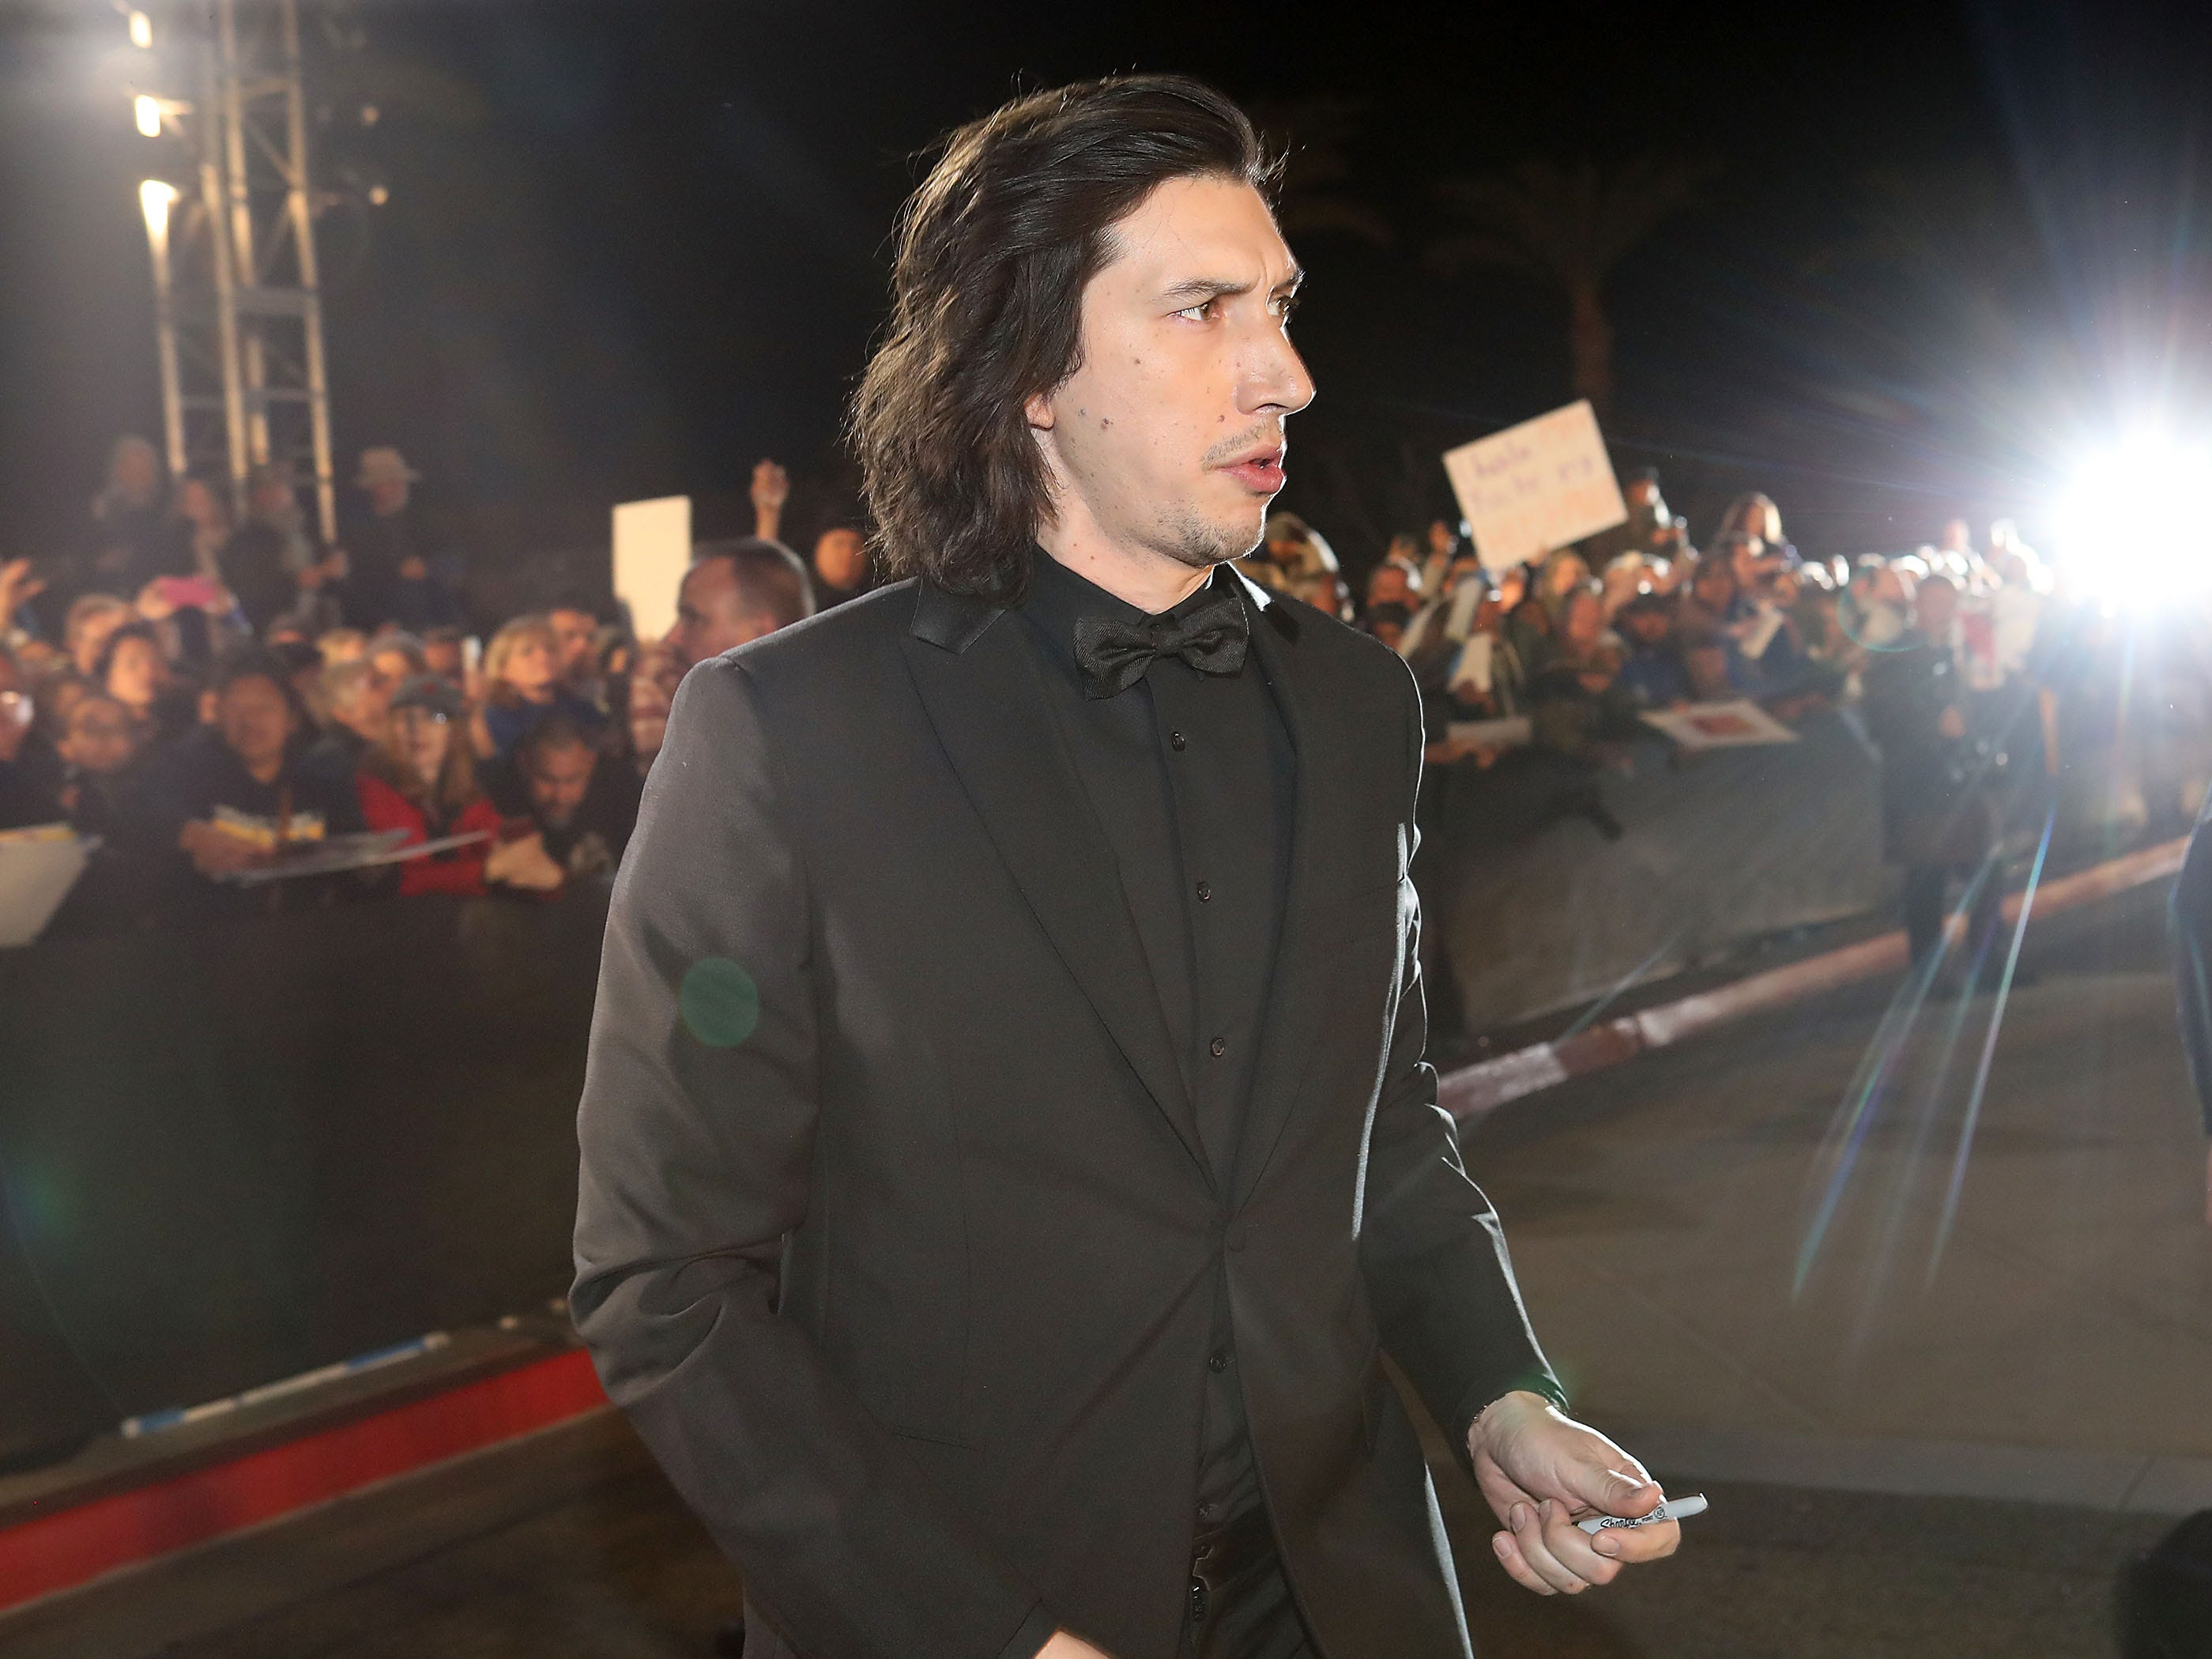 Adam Drive greets his fans at the Palm Springs International Film Festival Awards Gala, January 3, 2019.